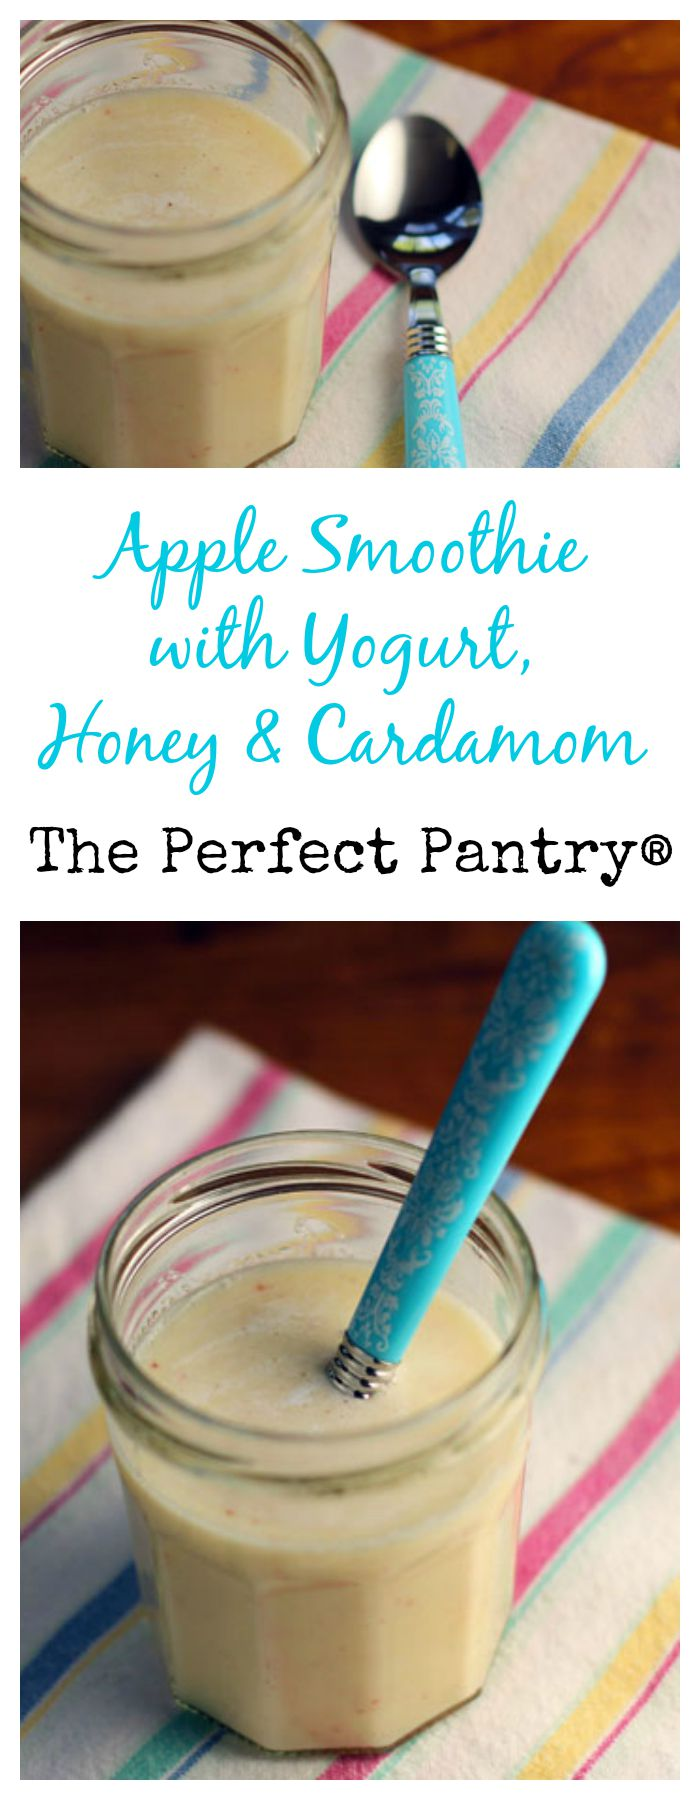 Apple smoothies with honey and cardamom taste just like Fall. Super-easy and nutritious.